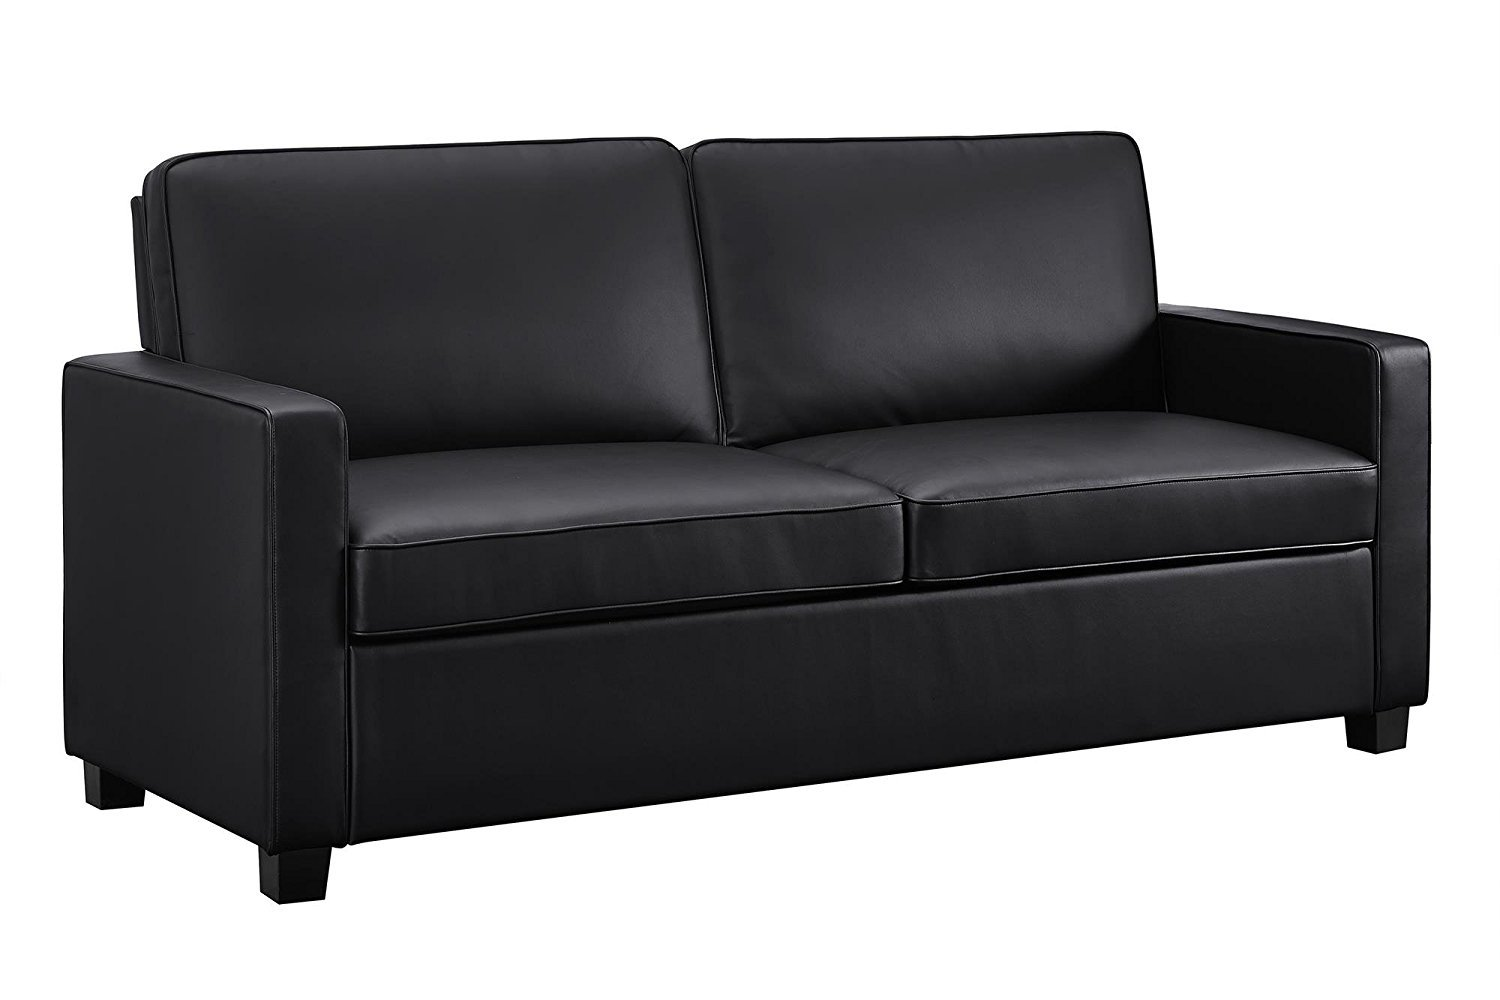 Leather Pull Out Couch Home Furniture Design